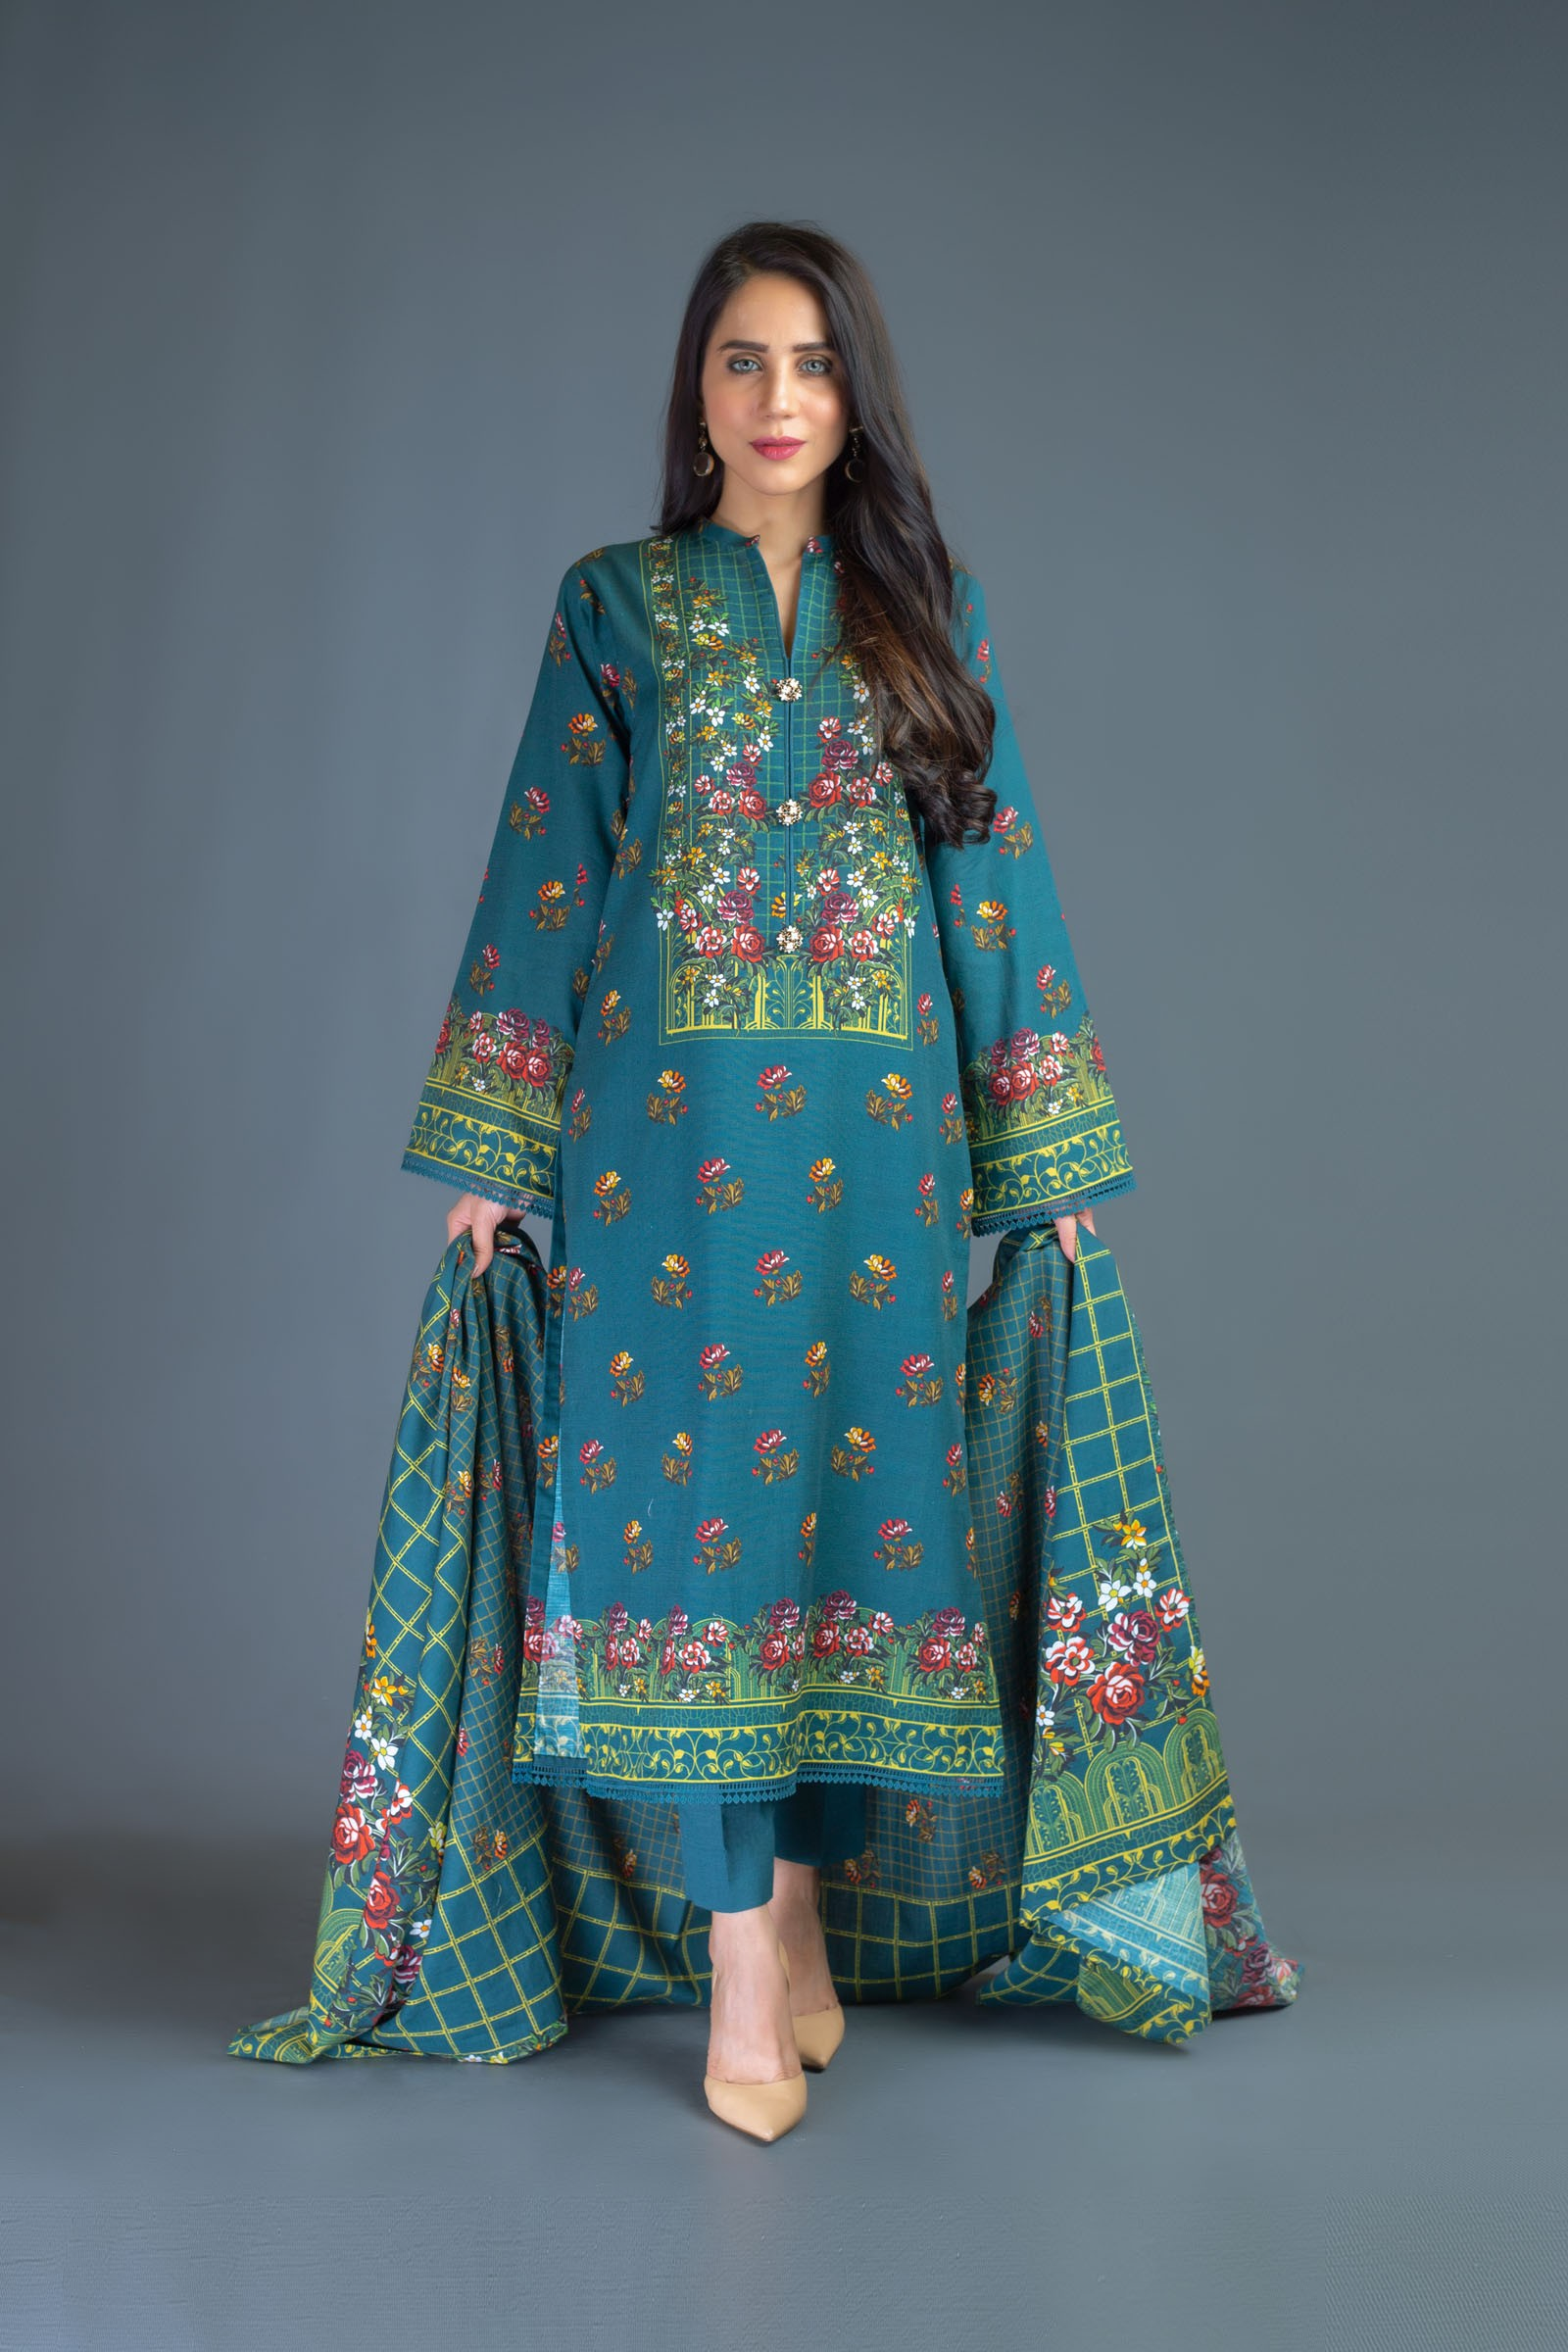 Bareeze Luxury Winter Embroidered Dresses Shawls Designs 2020